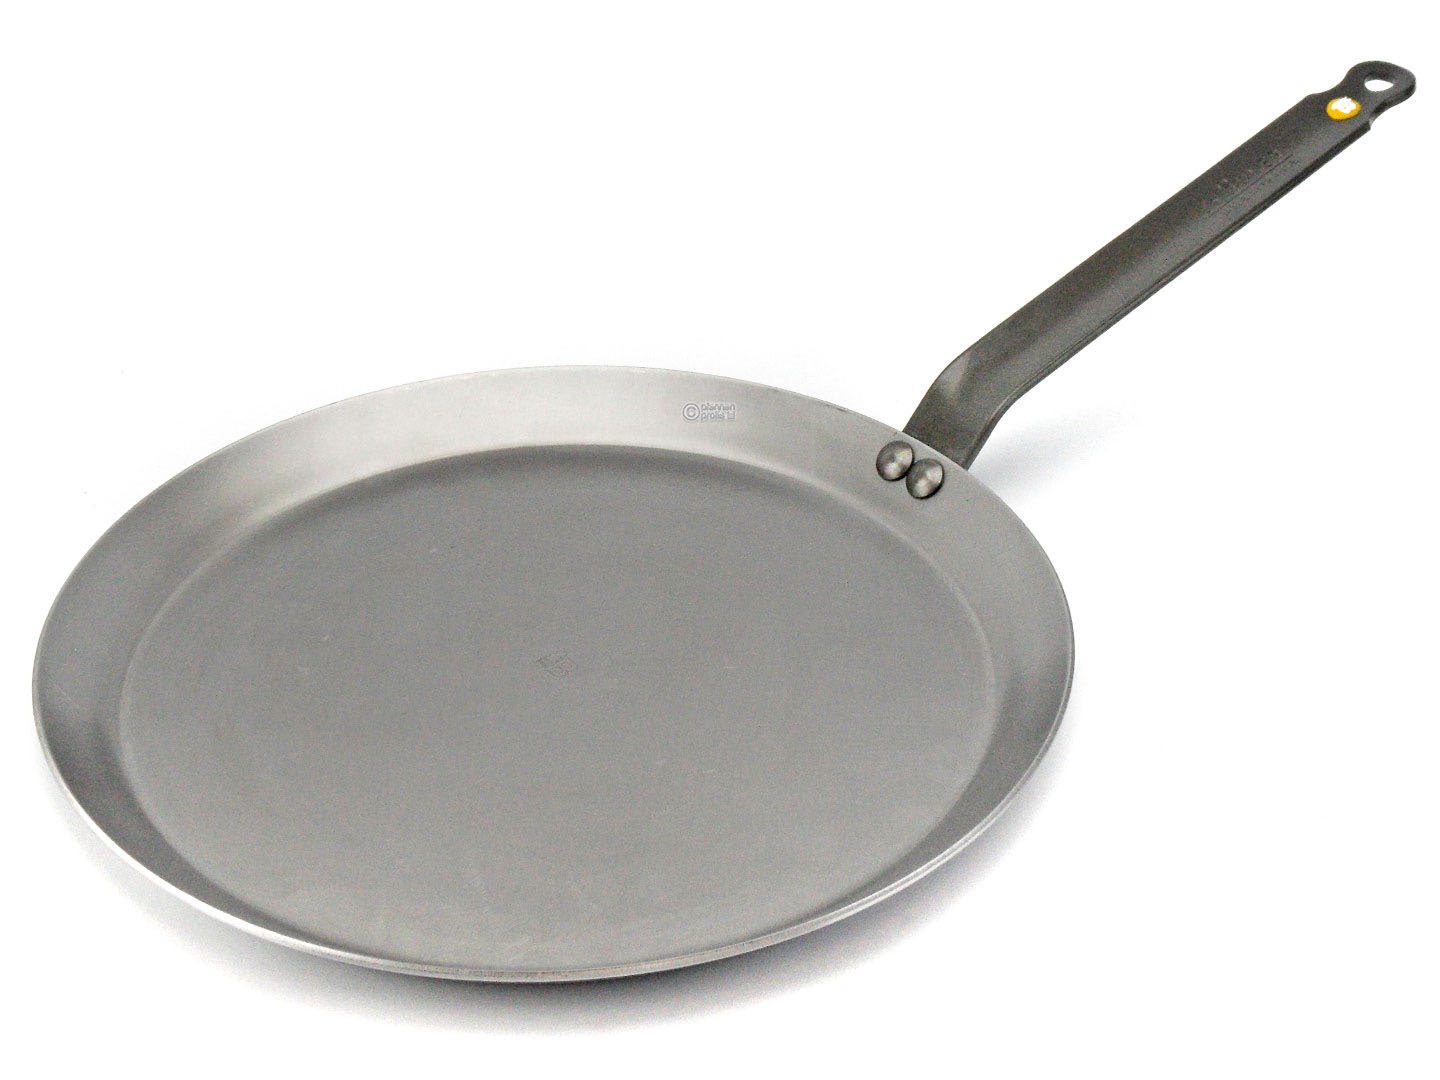 DE BUYER crêpe pan MINERAL B ELEMENT 30 cm iron pancake pan